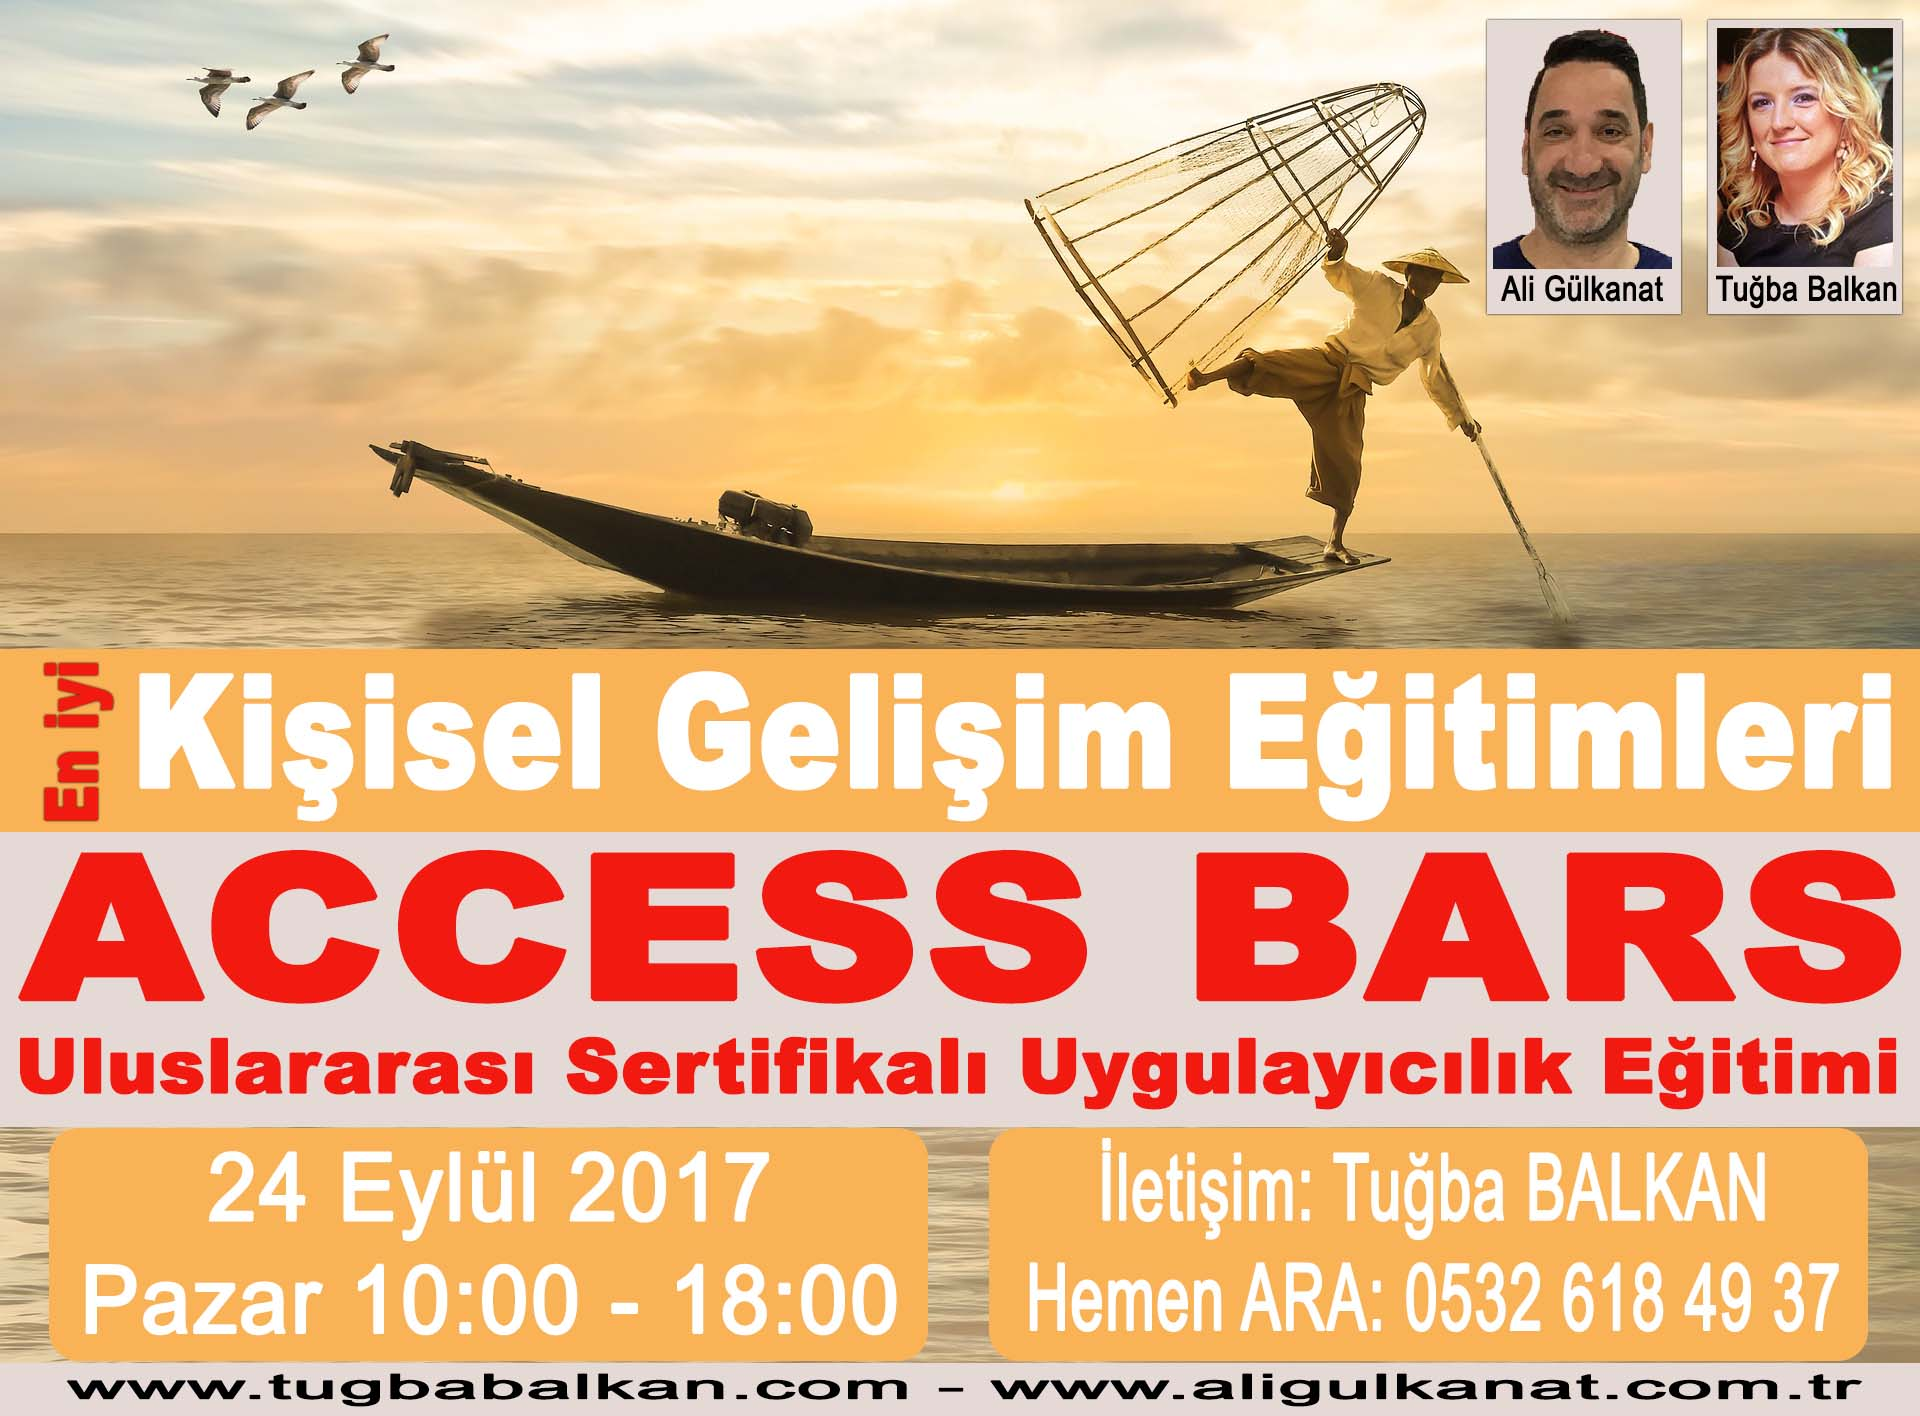 access bars kitap pdf, access bars kocaeli, access bars konya, access bars kurs, access bars kurucusu, access bars mucizeleri, access bars nasıl uygulanır, access bars ne işe yarar, access bars nedir, access bars nedir ekşi,